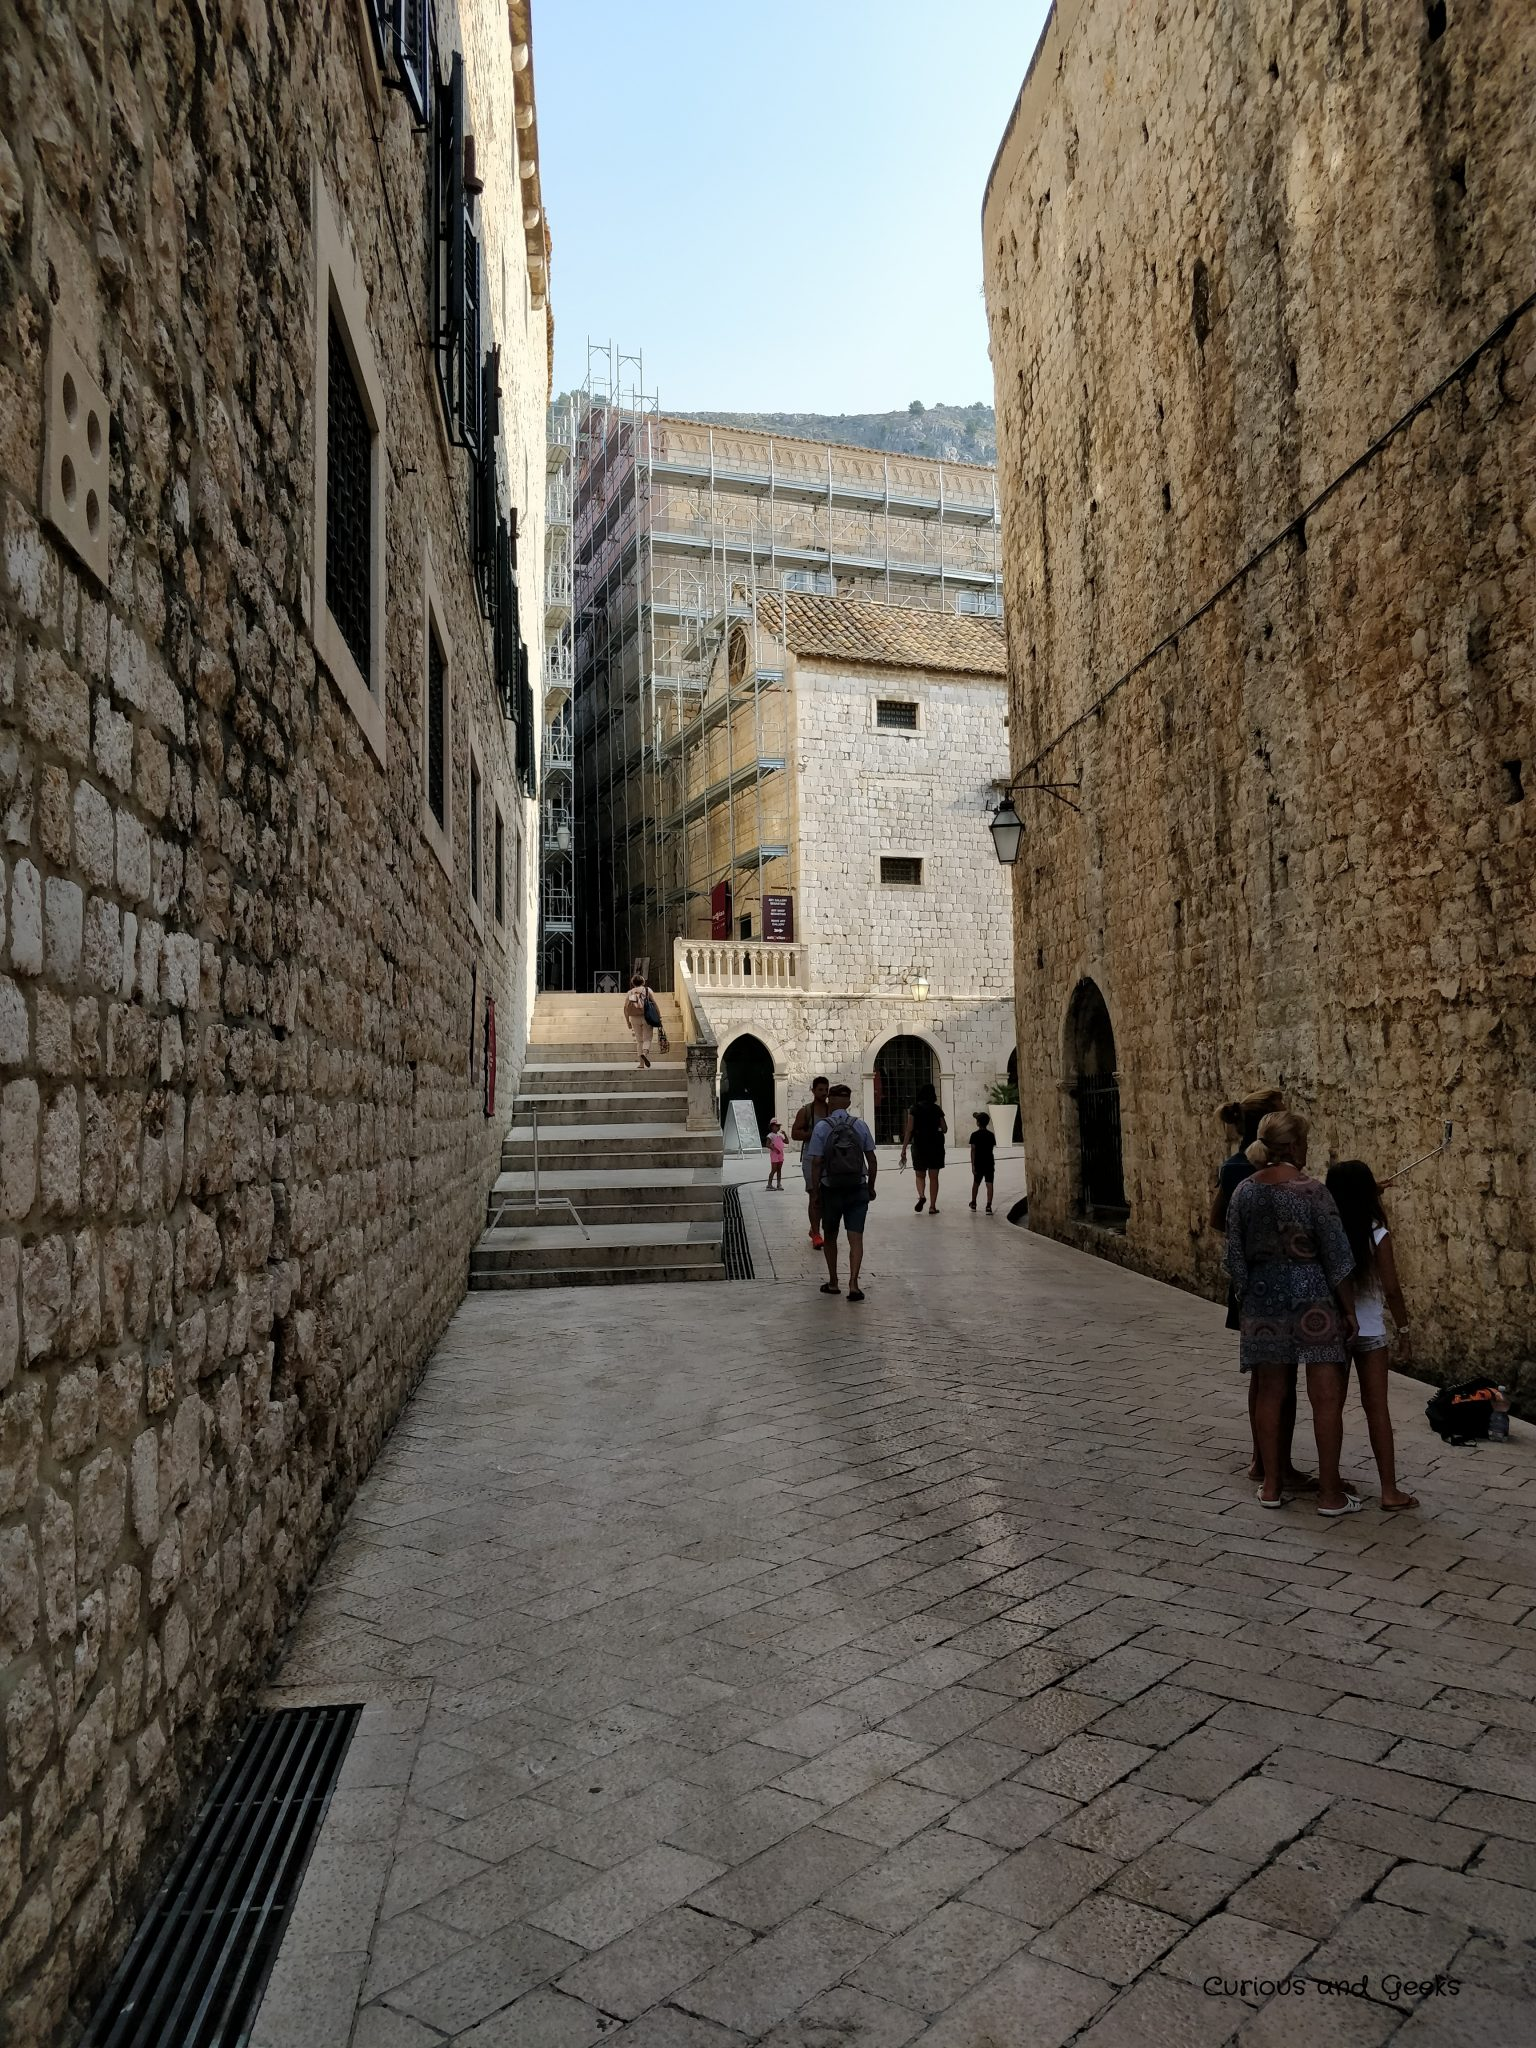 St Dominic Street in Dubrovnik Old Town - filming location for King's Landing streets